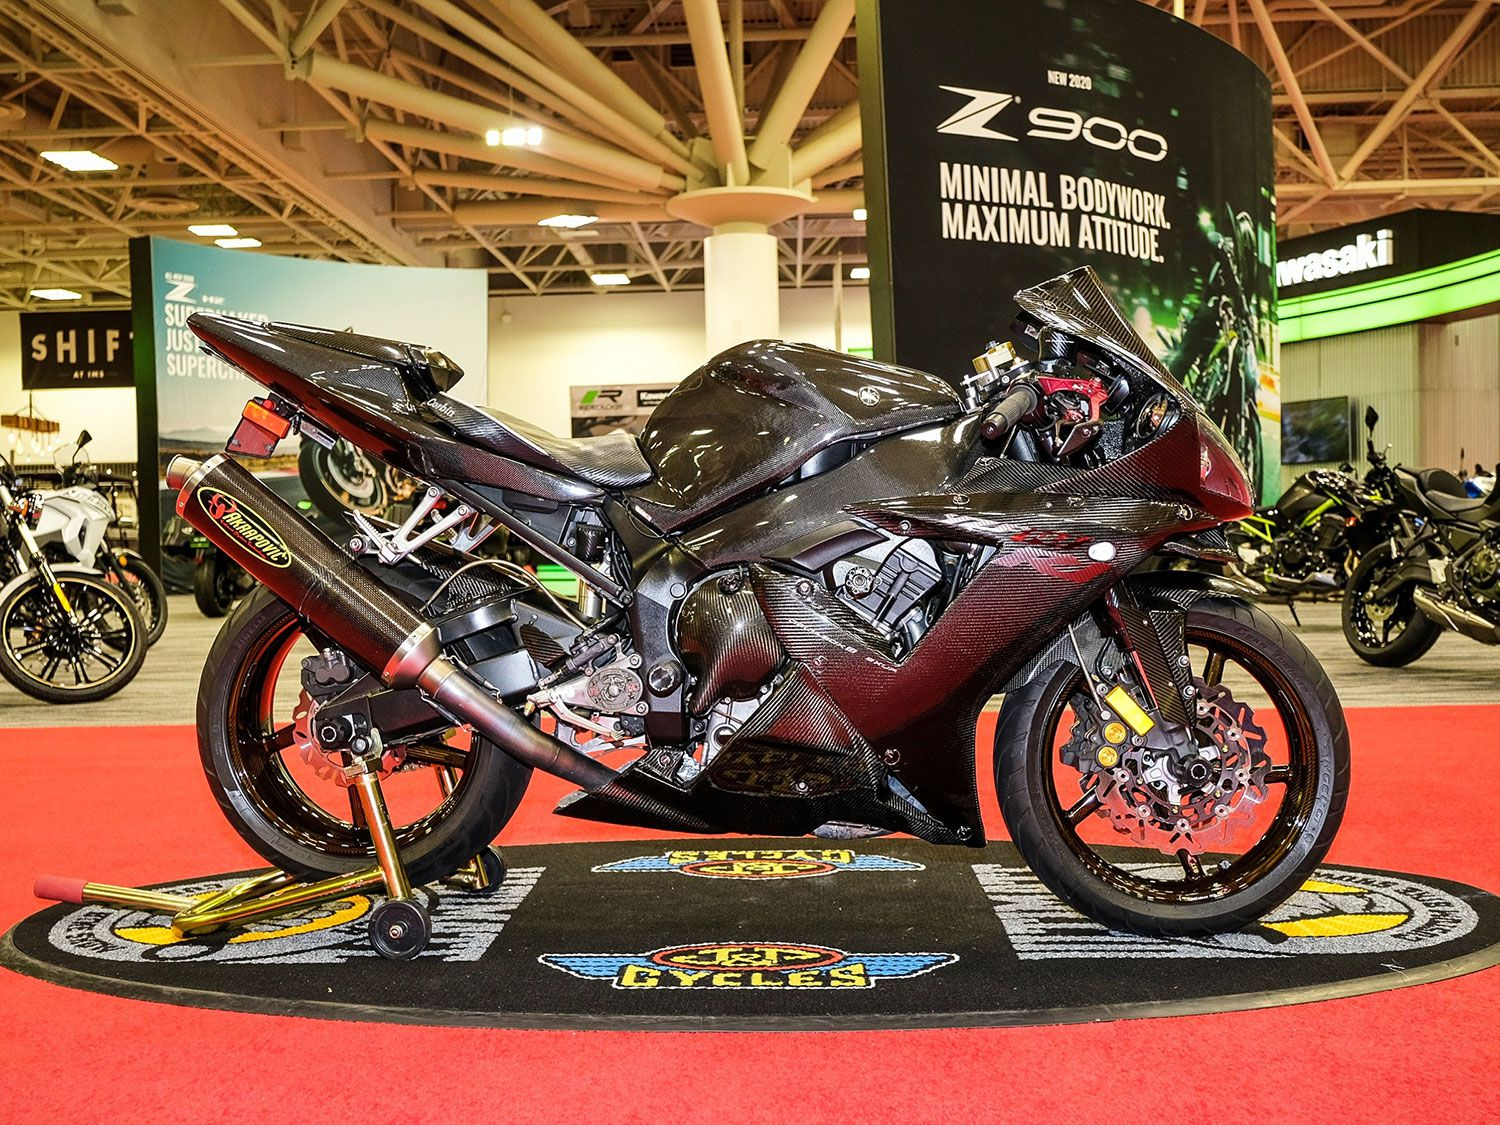 Johann Jack Inc.'s 2003 Yamaha YZF-R1 packing an Öhlins shock, Brembo brakes, carbon fiber Akrapovič exhaust, and carbon fiber BST wheels was named runner-up.